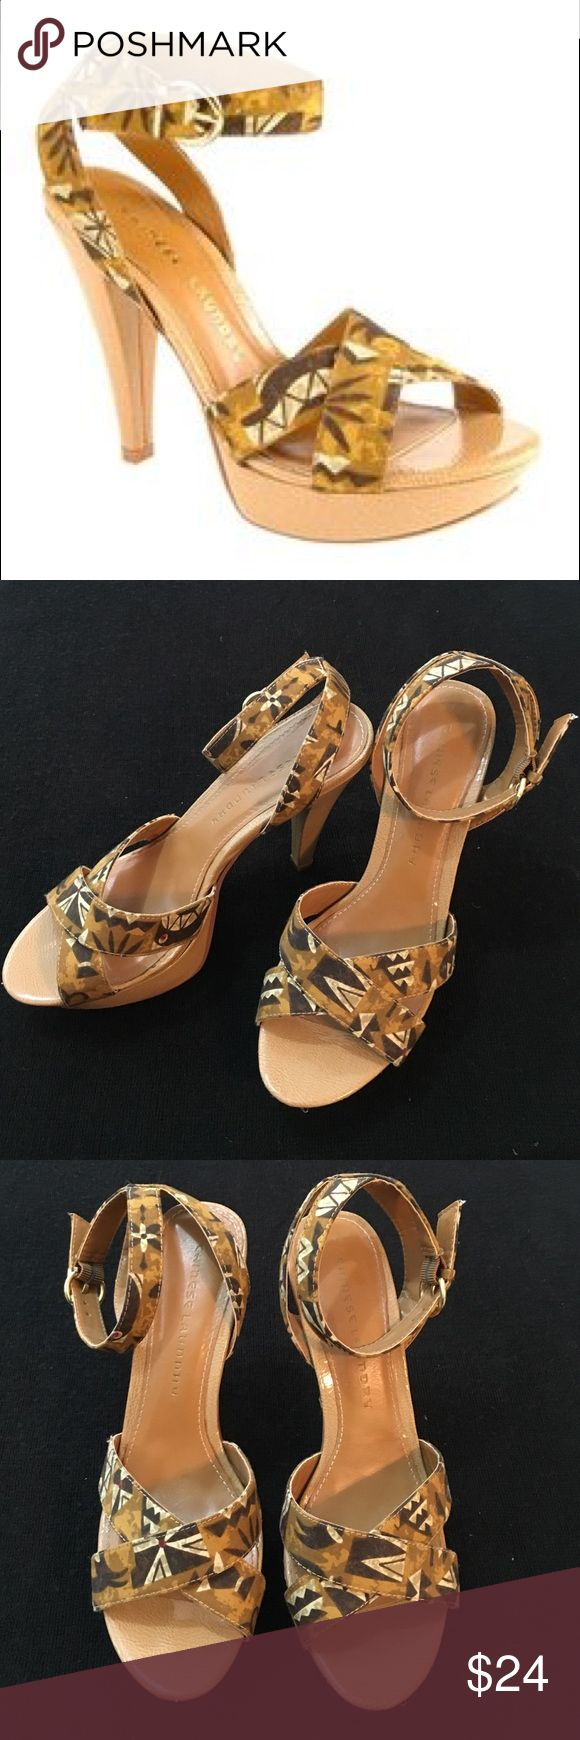 Chinese Laundry Breannie Tribal Print Pumps 8.5 Gently worn, brown/tan tribal patterned pumps, size 8.5, platform, comfortable, easy to wear Chinese Laundry Shoes